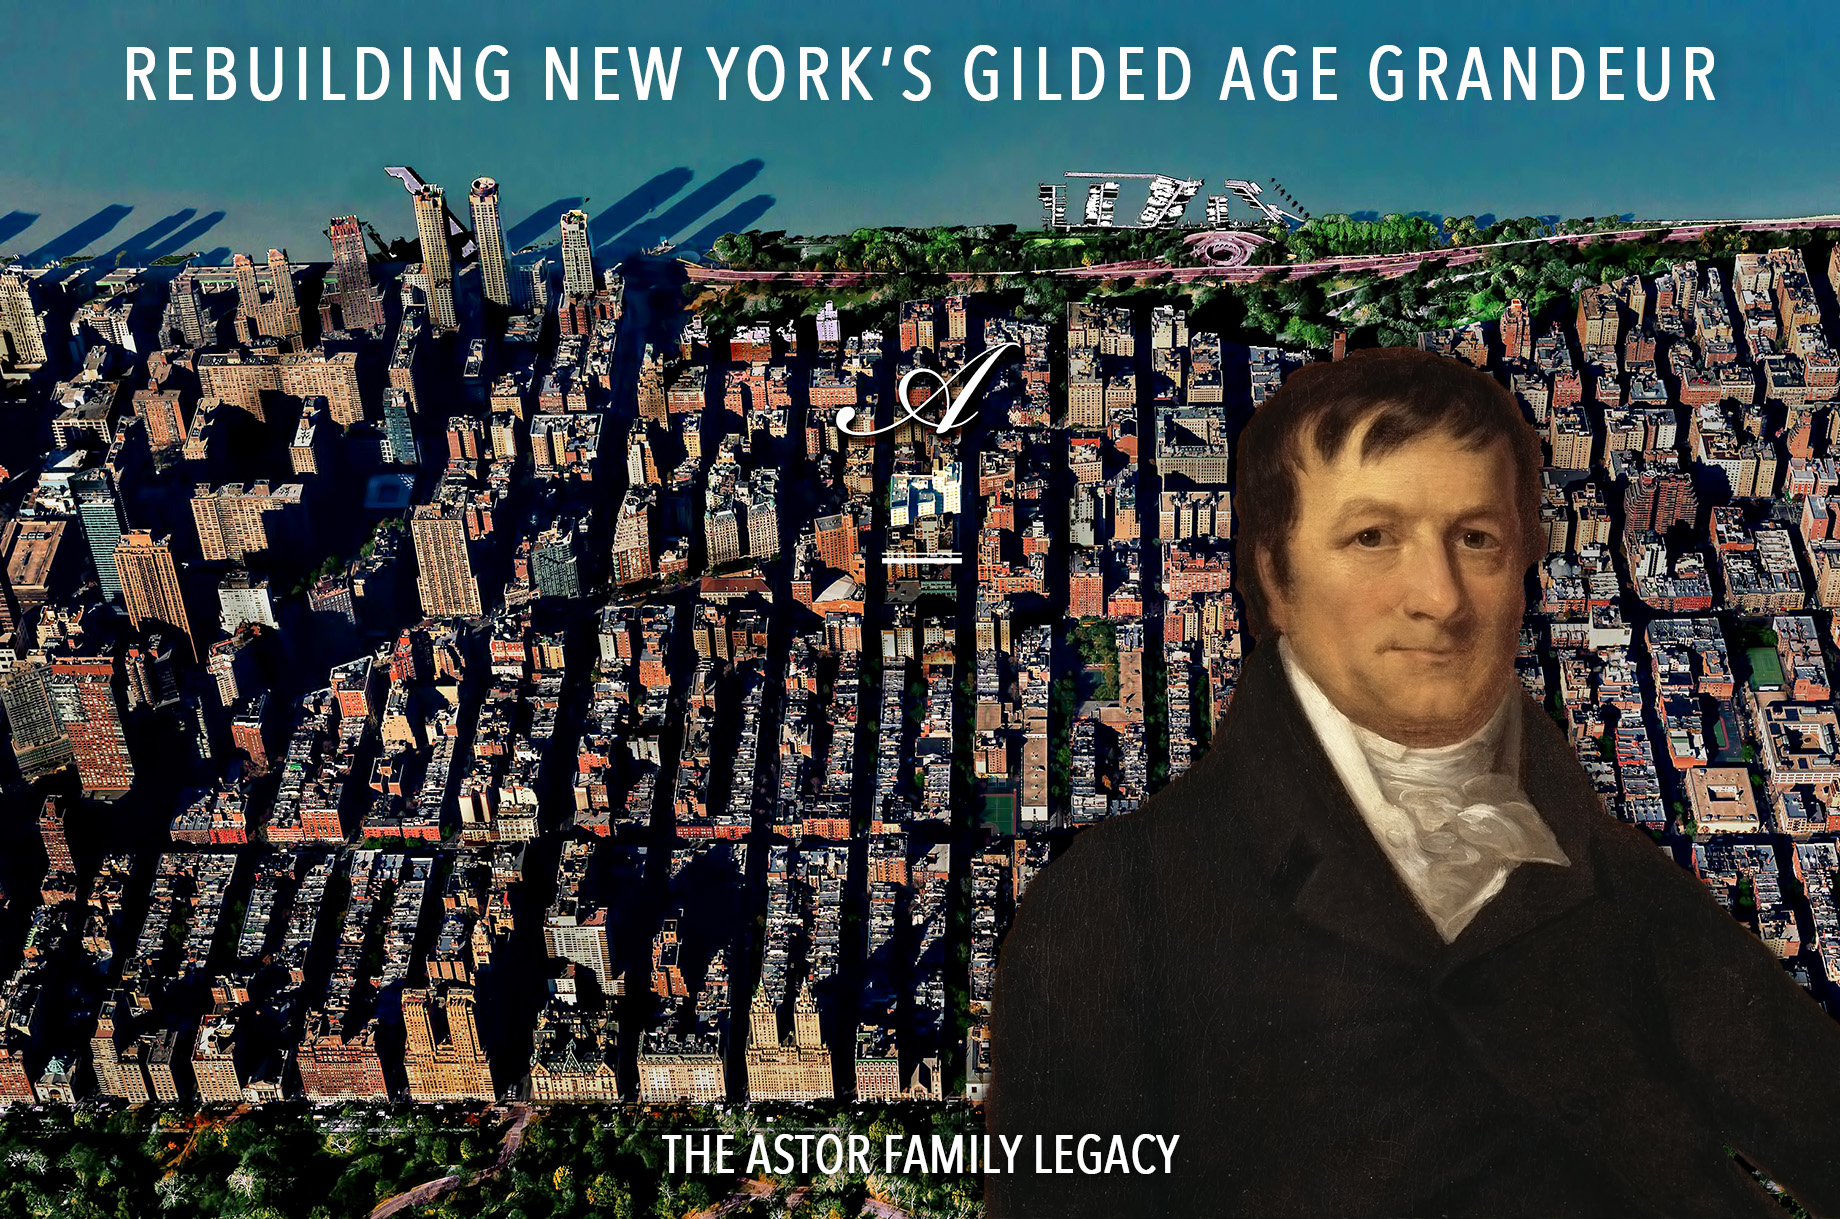 The Astor Family Legacy - Rebuilding New York's Gilded Age Grandeur